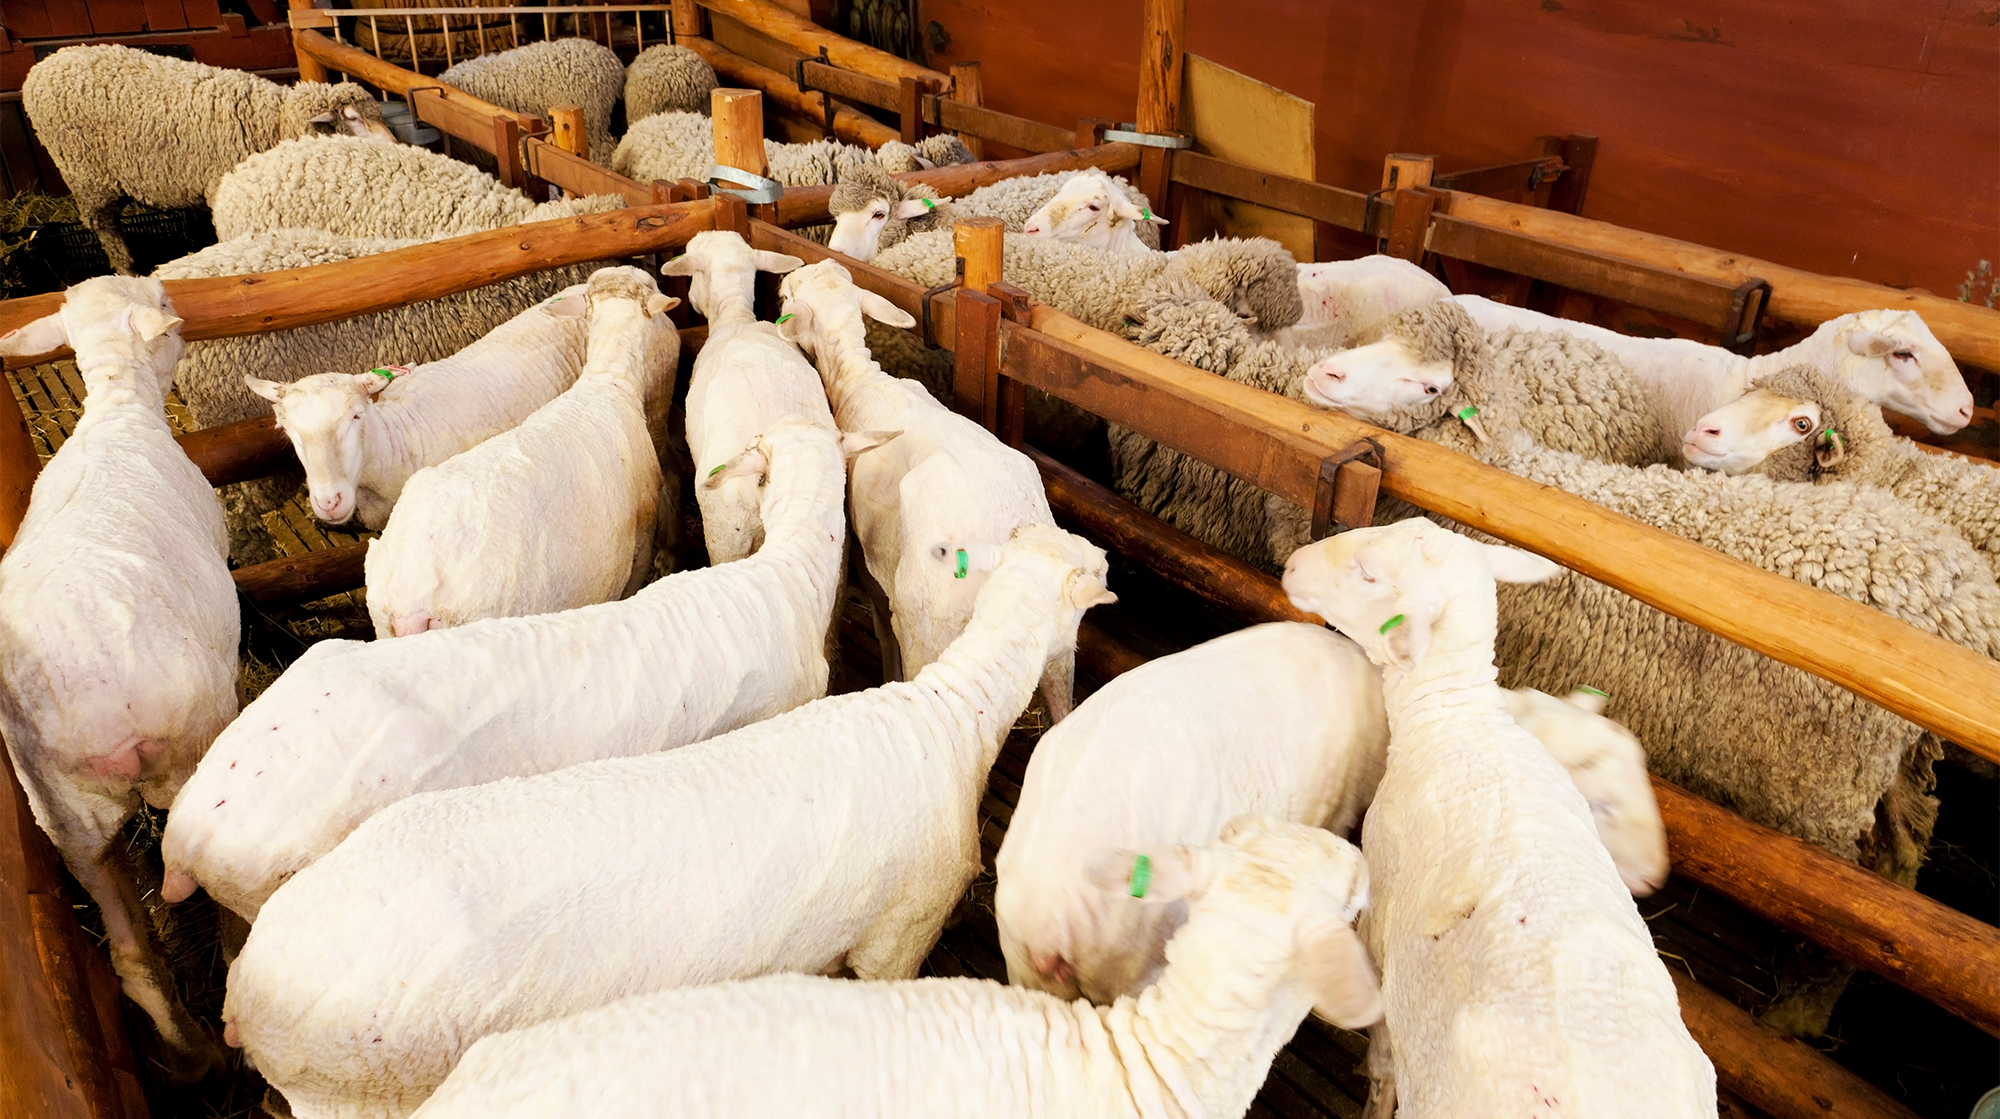 AUSTRALIAN SHEARING SUPPLIES